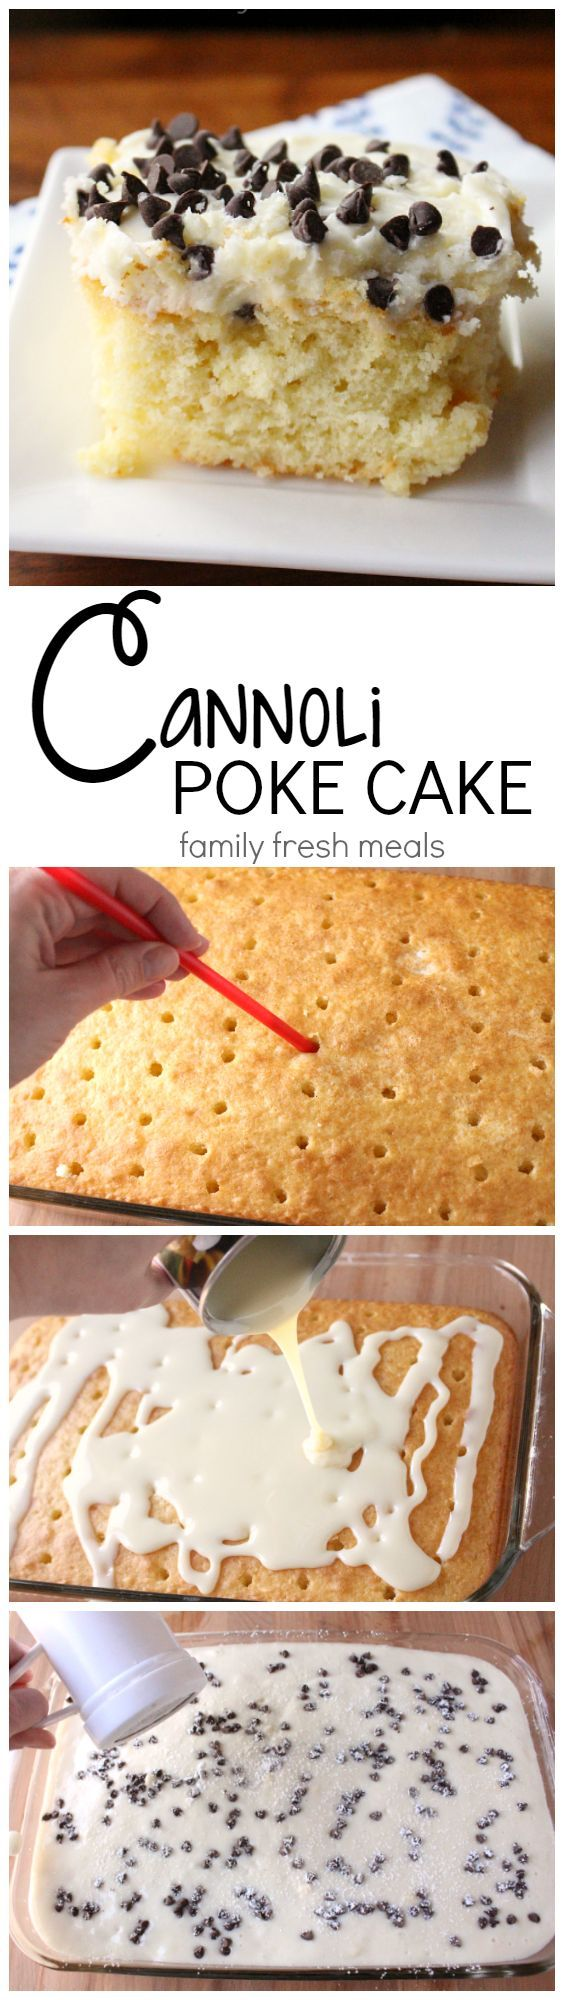 Cannoli Poke Cake Recipe. All you do is start with a boxed white cake, poke those holes, and smother it with condensed milk, sweetened creamy cannoli filling! This is not just a cake-it's dessert nirvana.